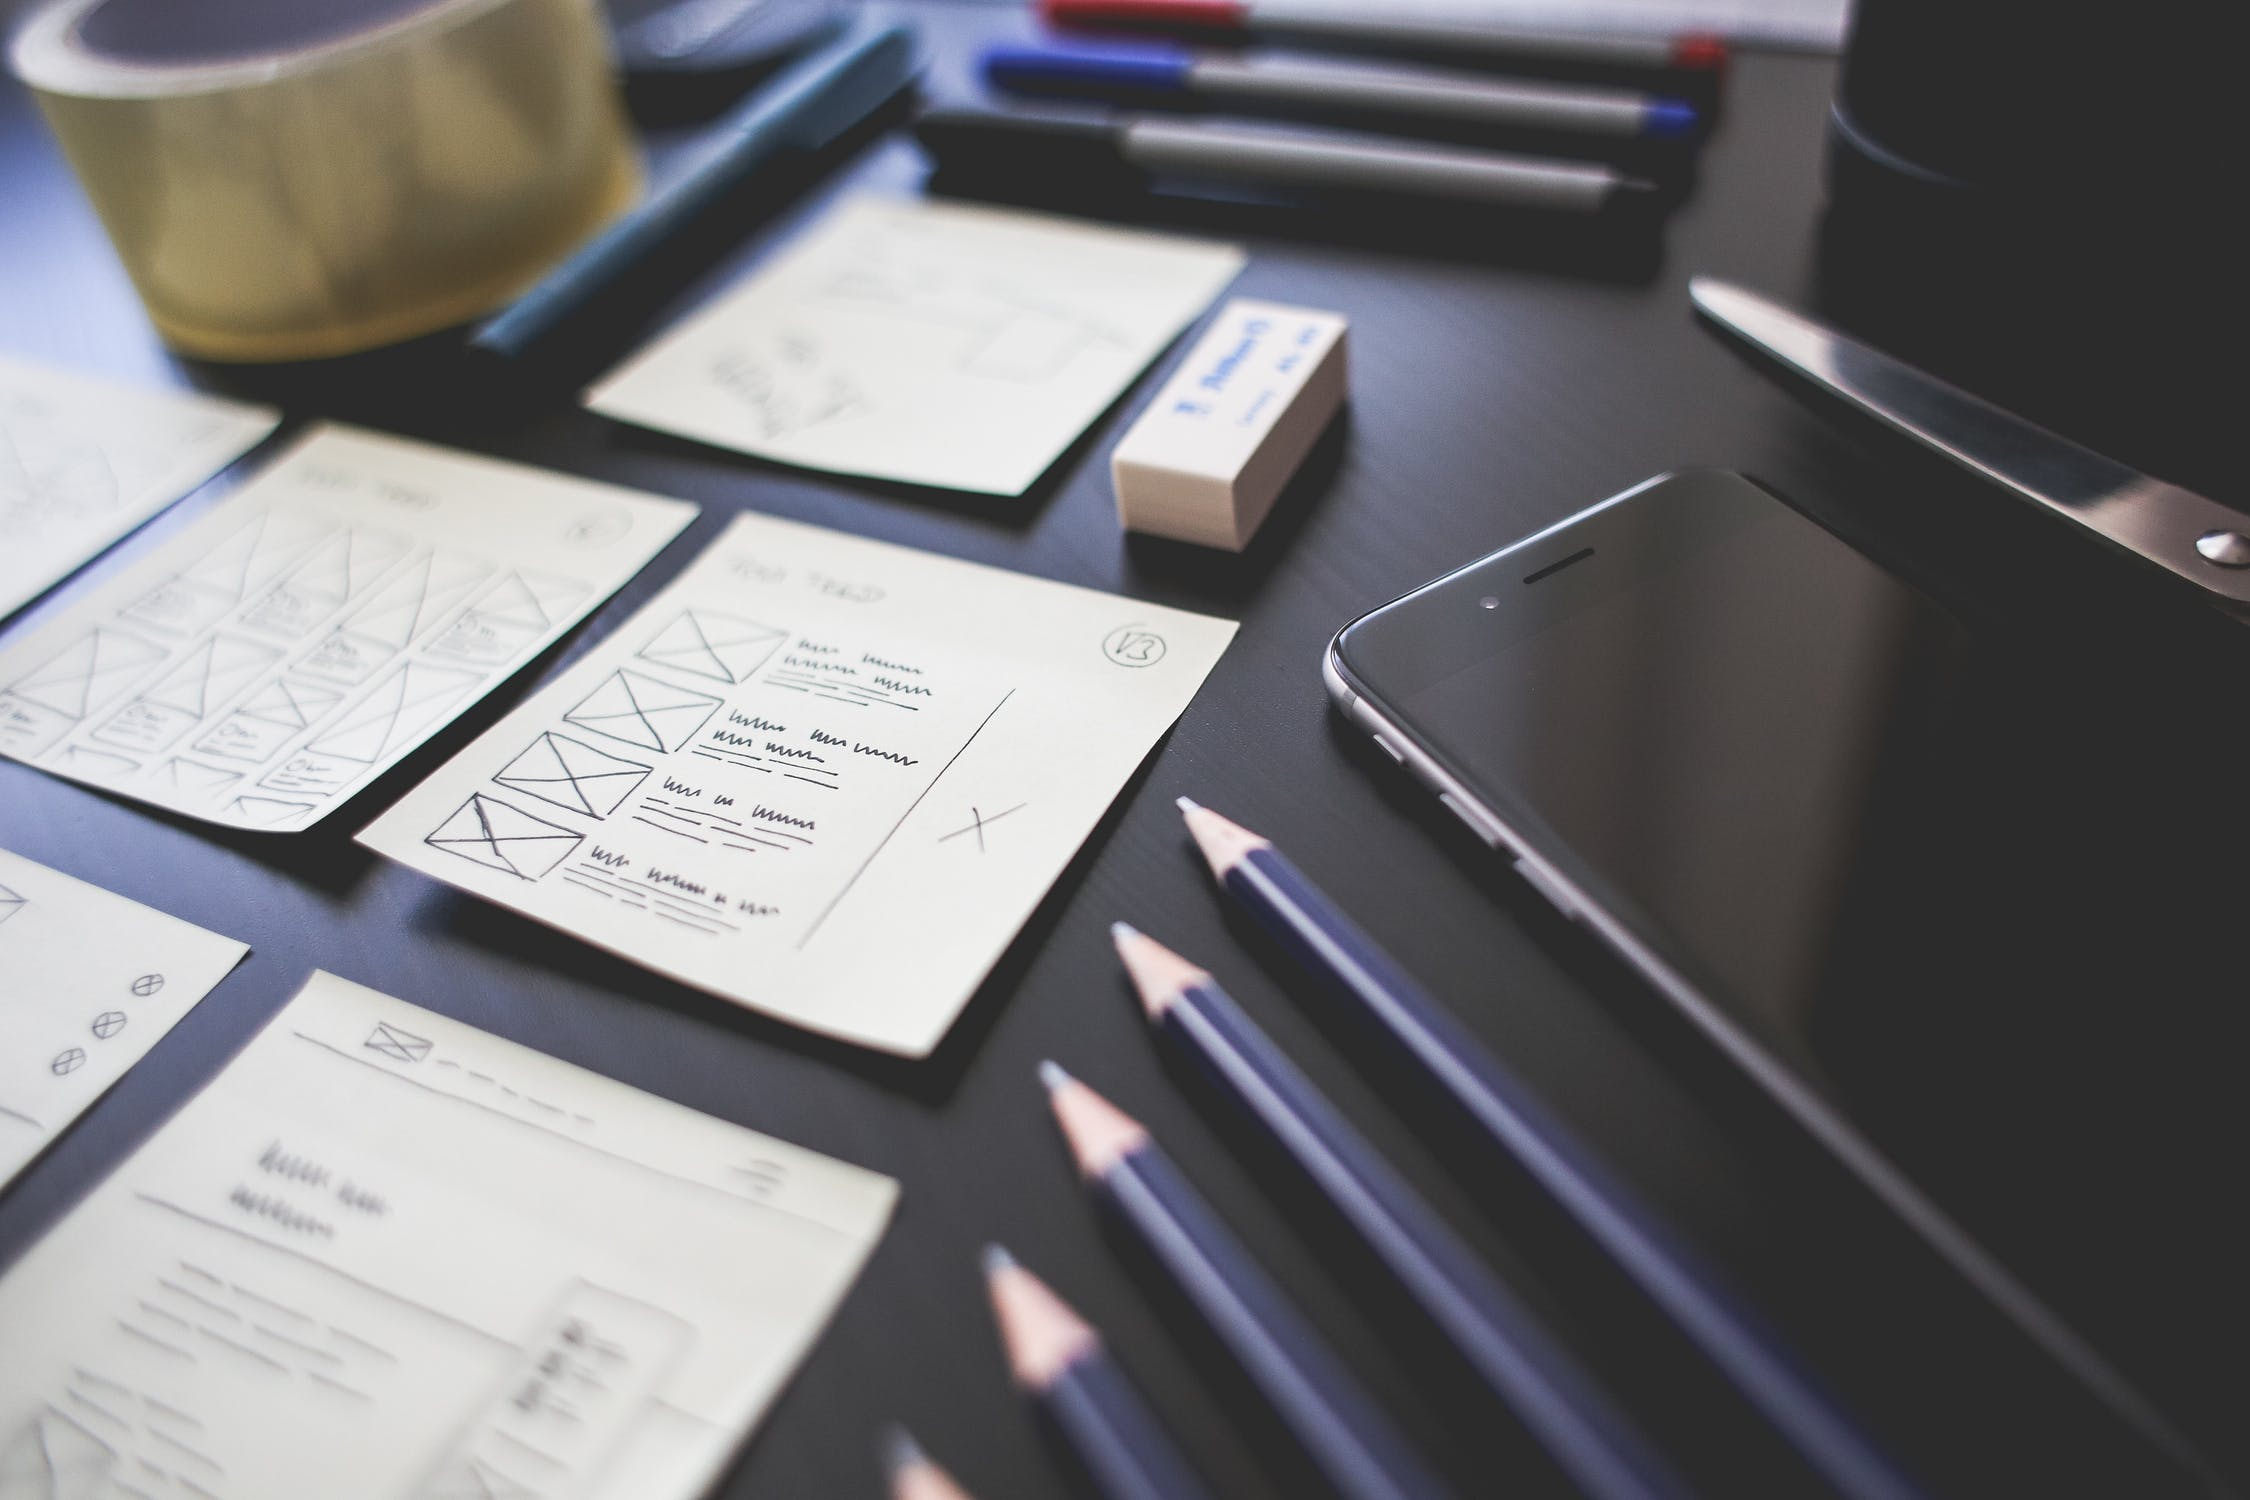 Design Principles For Mobile Users To Improve User Experience